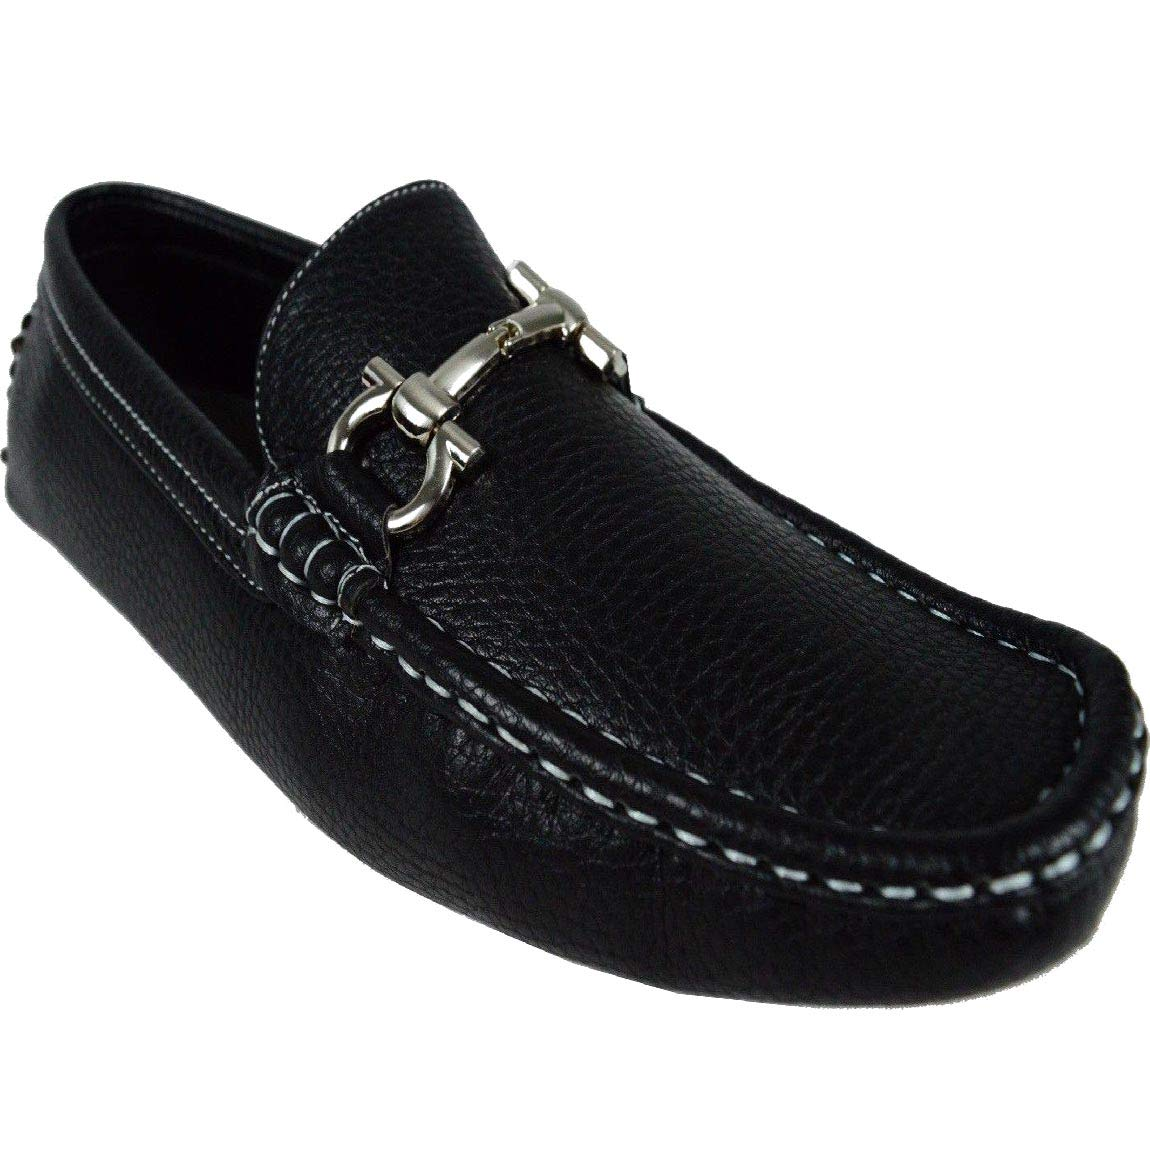 e7f69d41d1e Amazon.com | Men's Giovanni Shoes Loafers Casual Slip-On Formal ...